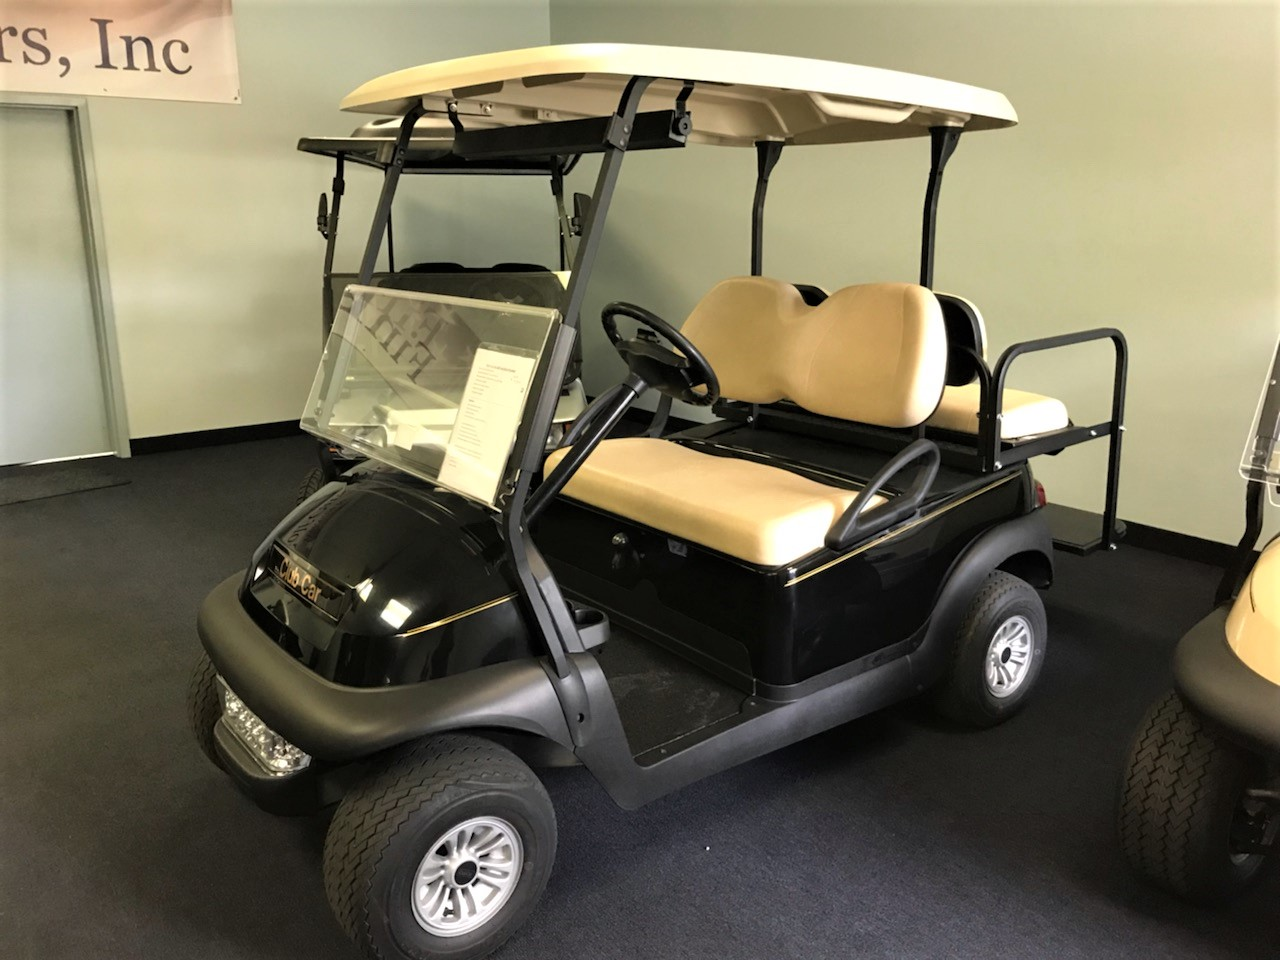 For-Sale Used Limo Golf Carts For Sale Html on limo golf cart rims, limo golf cart kits, limo golf cart parts,